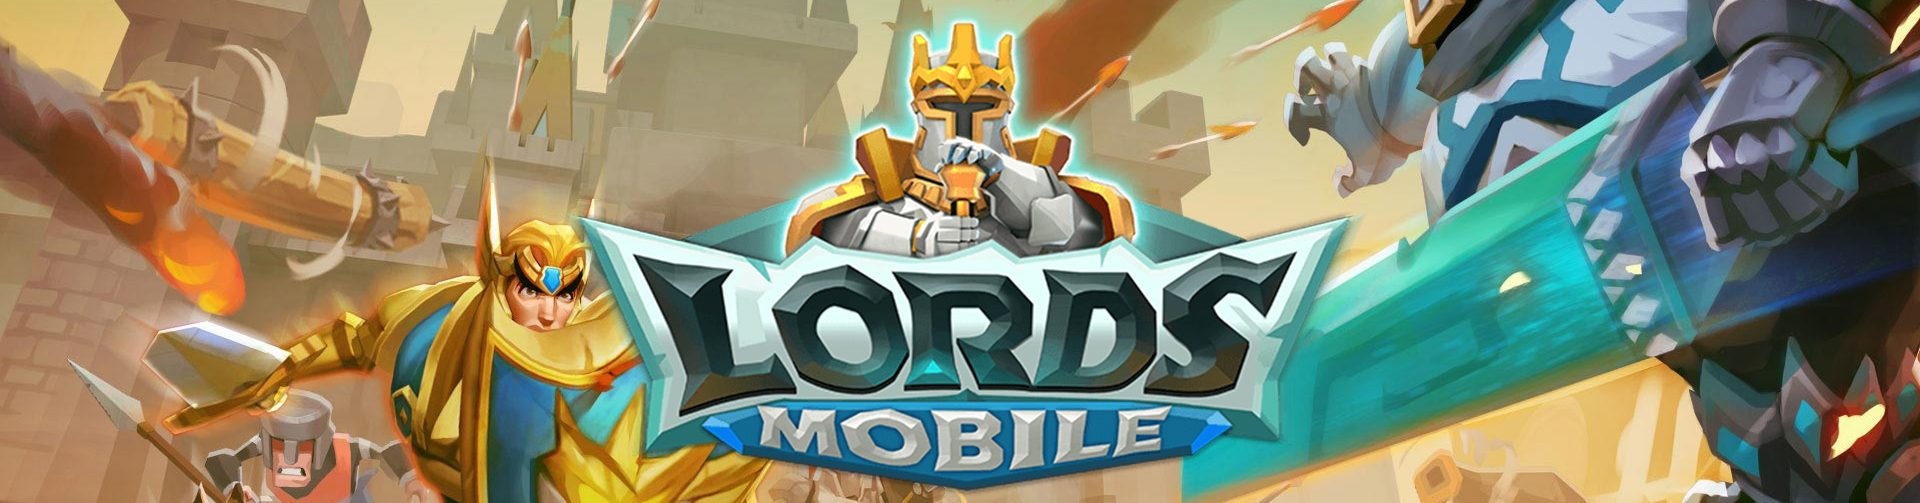 Lords mobile hero stages guide